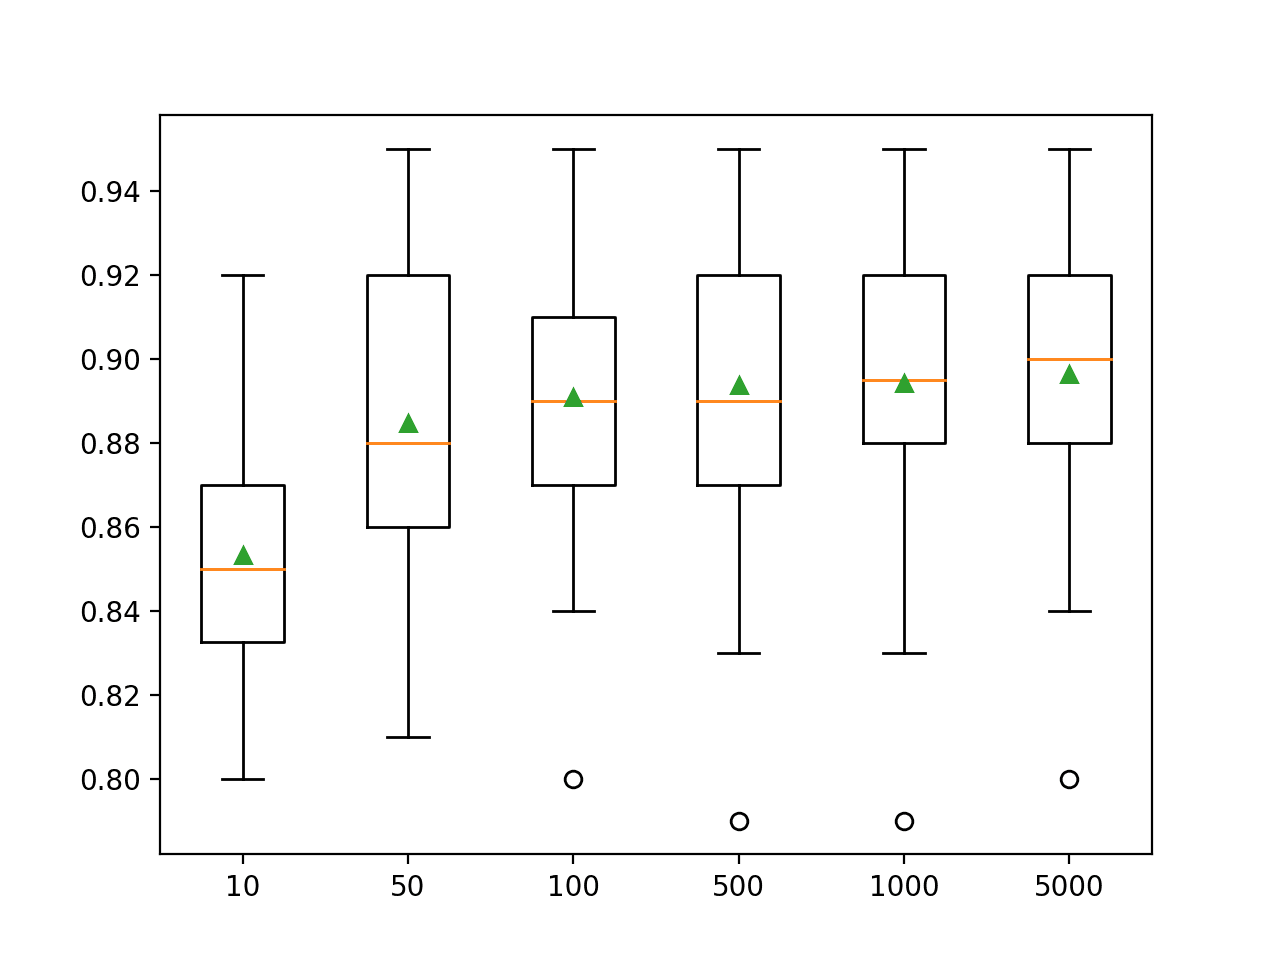 Box Plot of Random Subspace Ensemble Size vs. Classification Accuracy